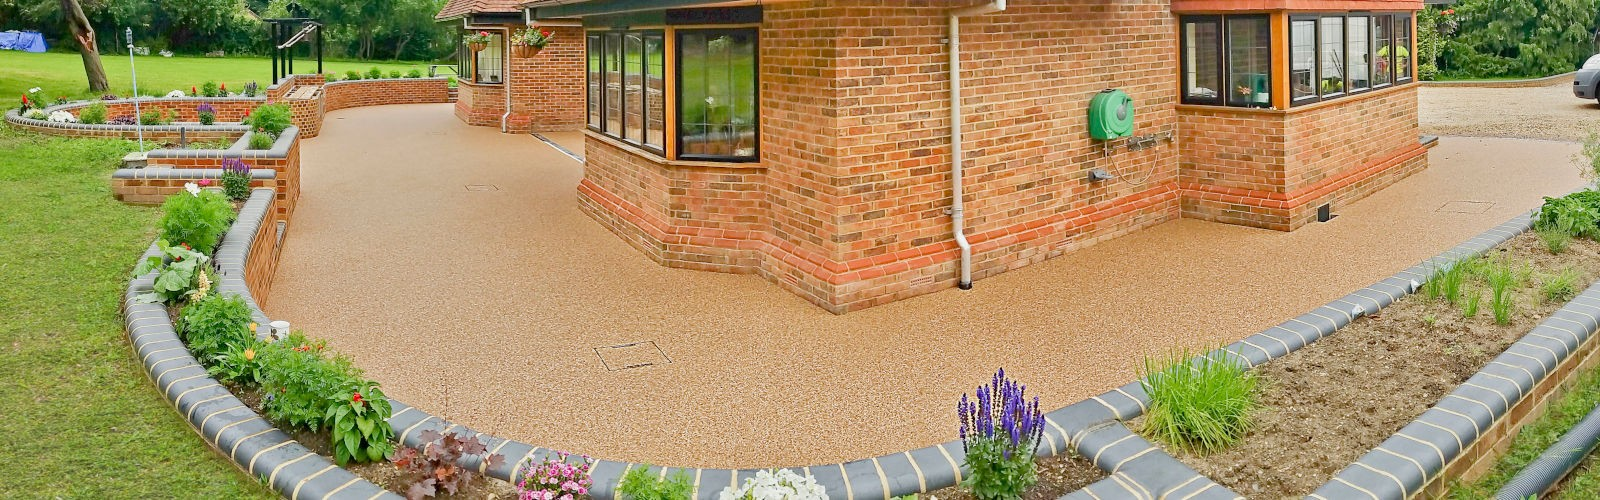 Resin bound stone patio and driveway in UK